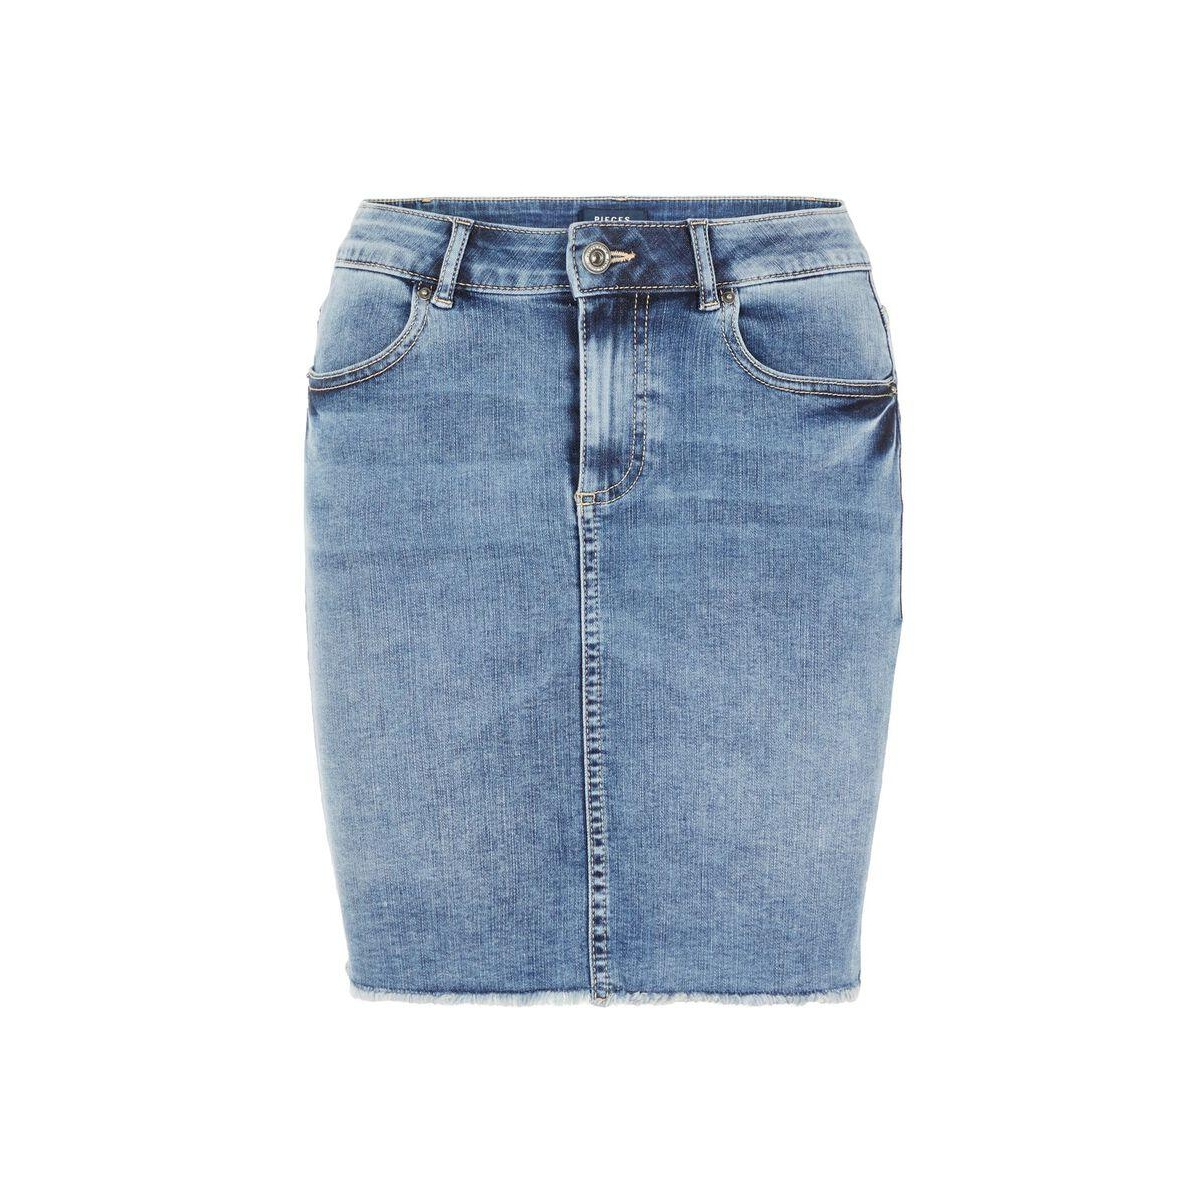 pcaia mw dnm skirt lb111-vi/noos 17094854 pieces rok light blue denim